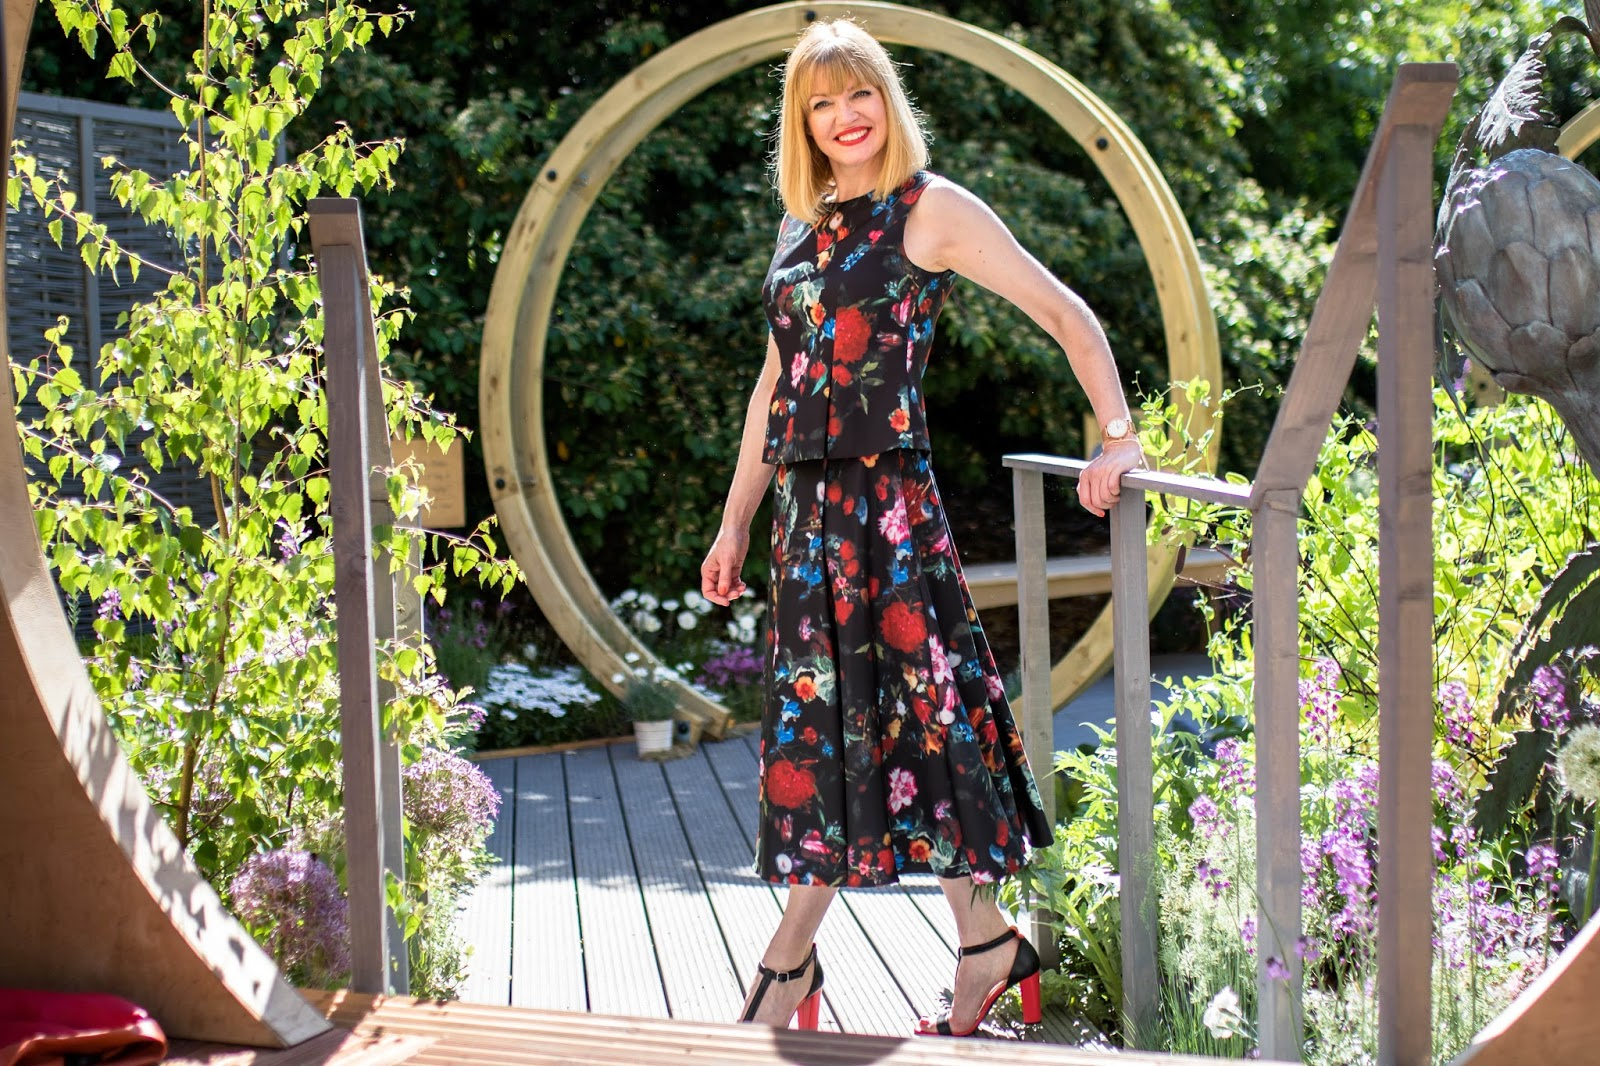 What-Lizzy-Loves-Madeleine-black-floral-peplum-top-matching-floral-midi-skirt-tomato-red-leather high-heeled-sandals-what-to-wear-Chelsea-Flower-Show